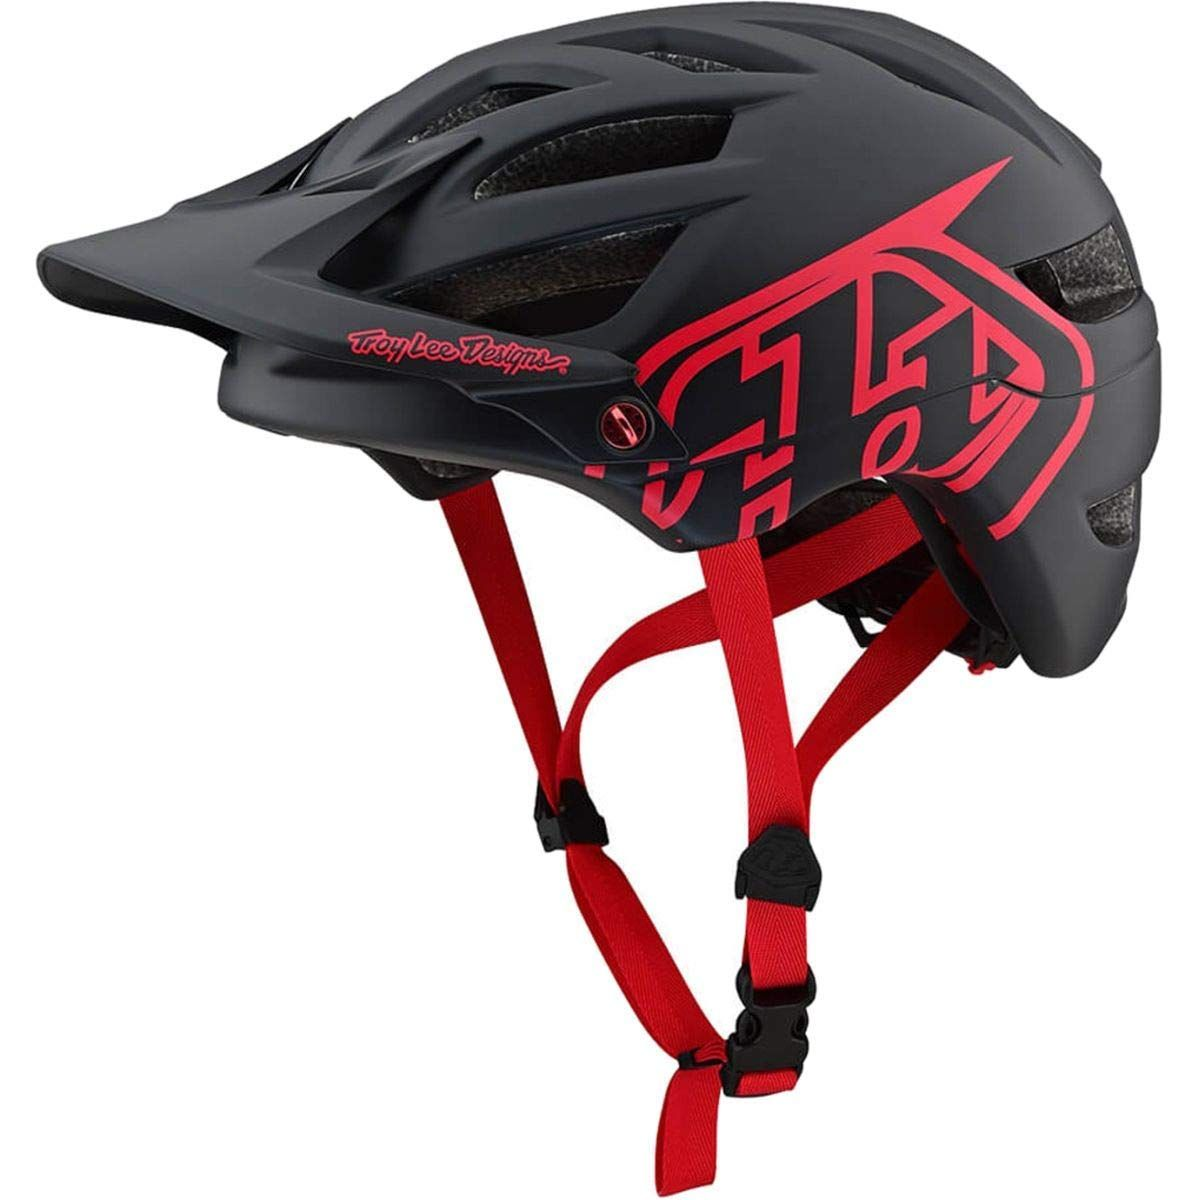 2019 Troy Lee Designs A1 Drone Helmet Black Red Xl 2xl See The